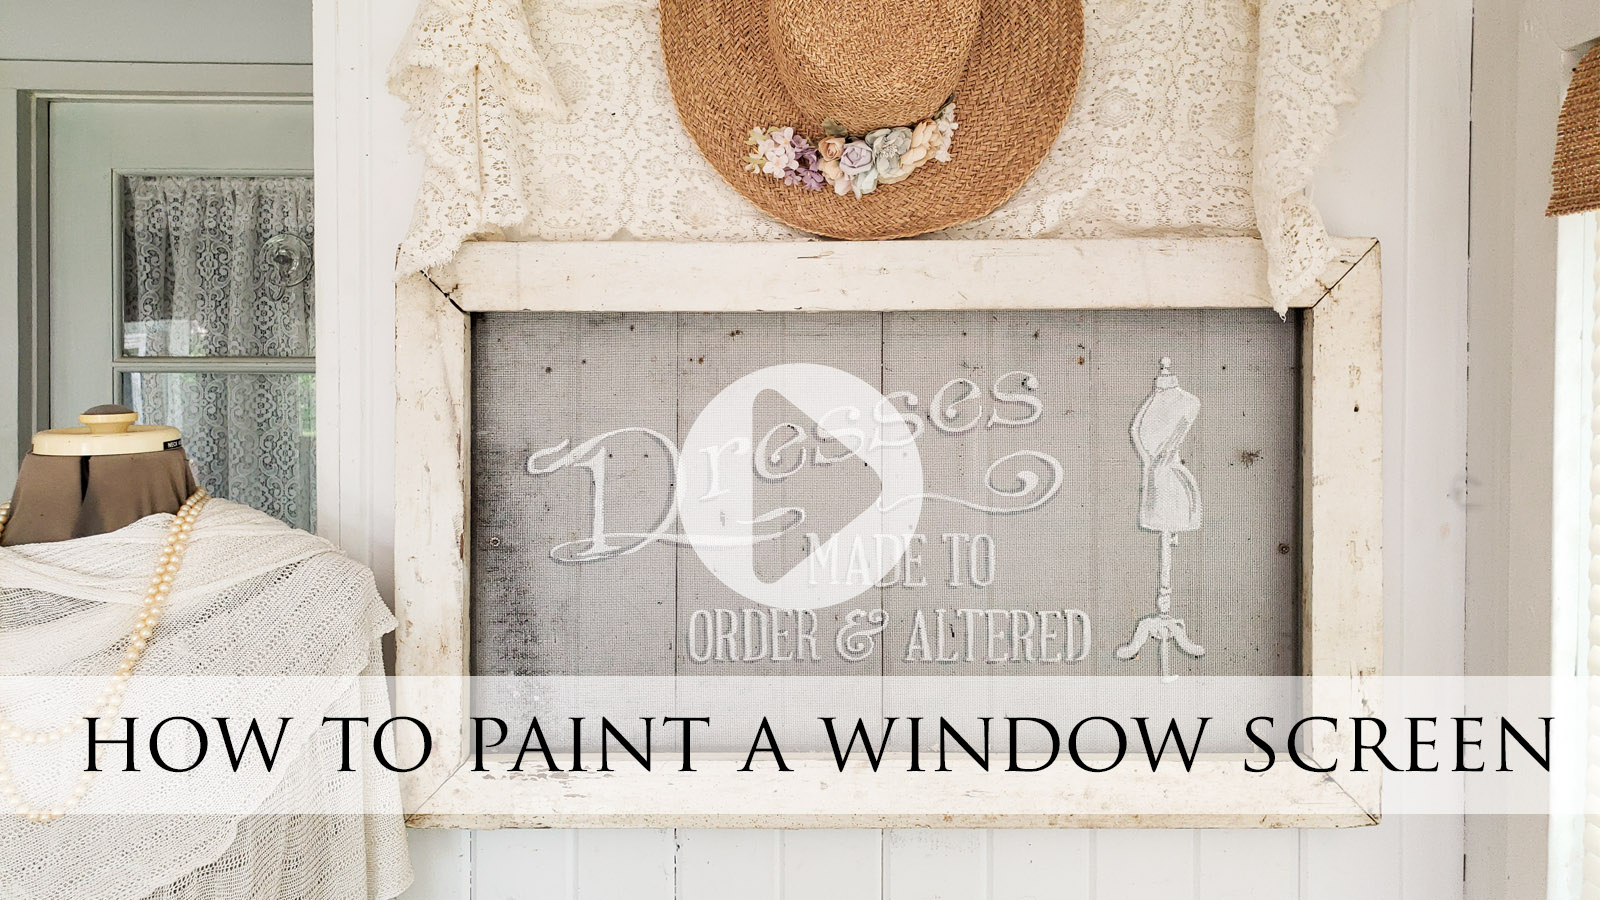 DIY Video Tutorial How to Paint a Window Screen by Larissa of Prodigal Pieces | prodigalpieces.com